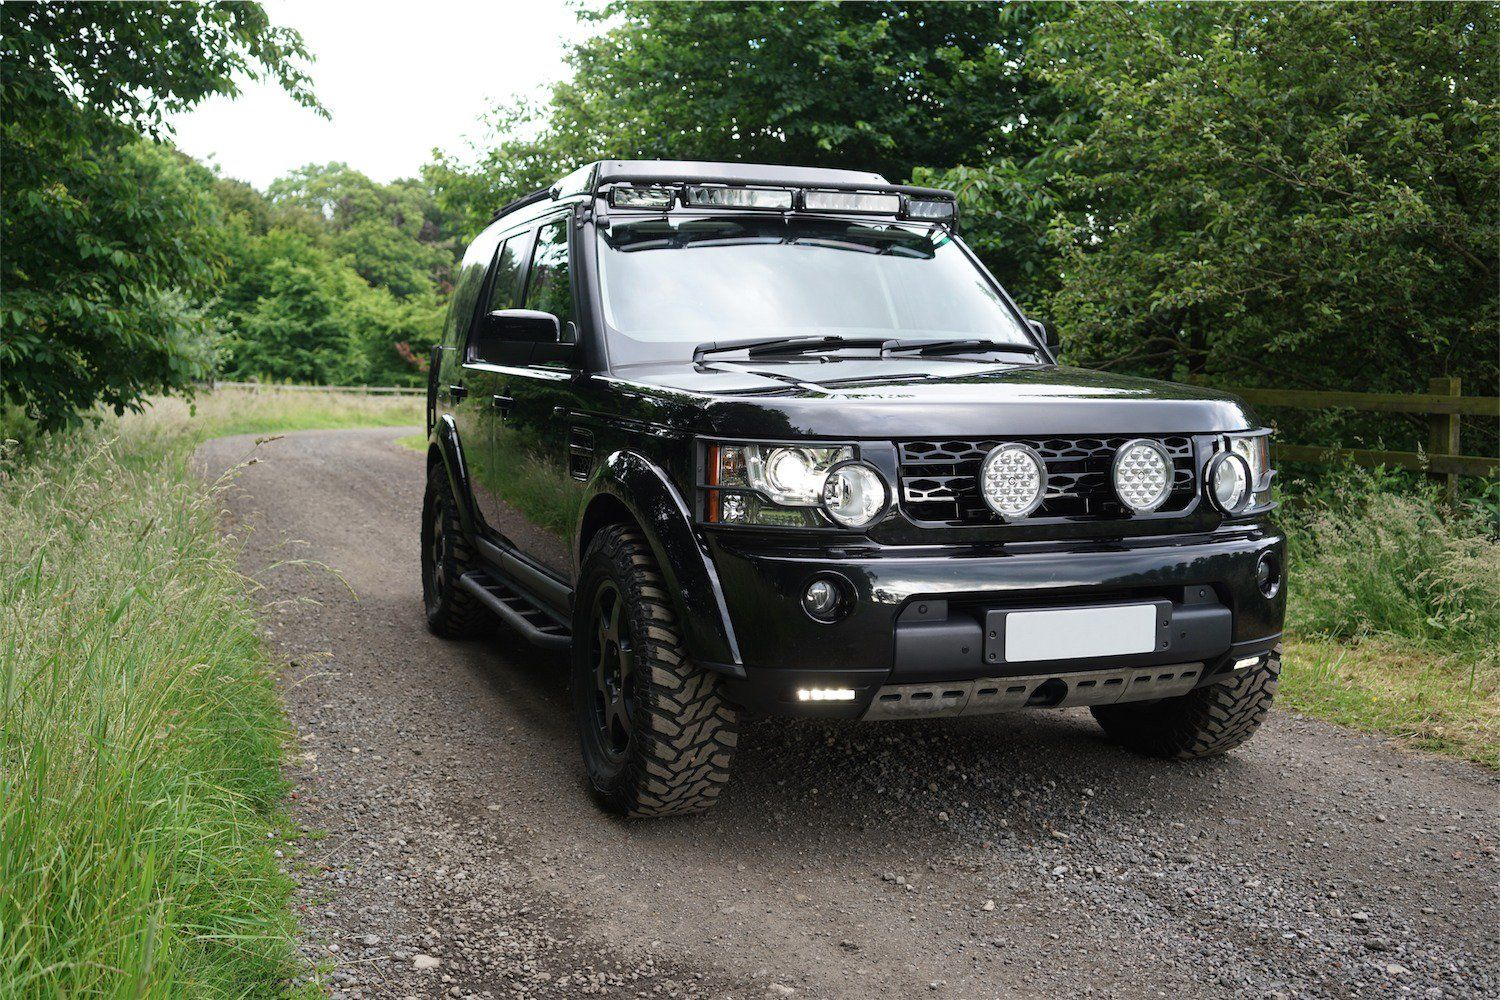 ProSpeed (ProSpeed_UK) Twitter Land rover discovery